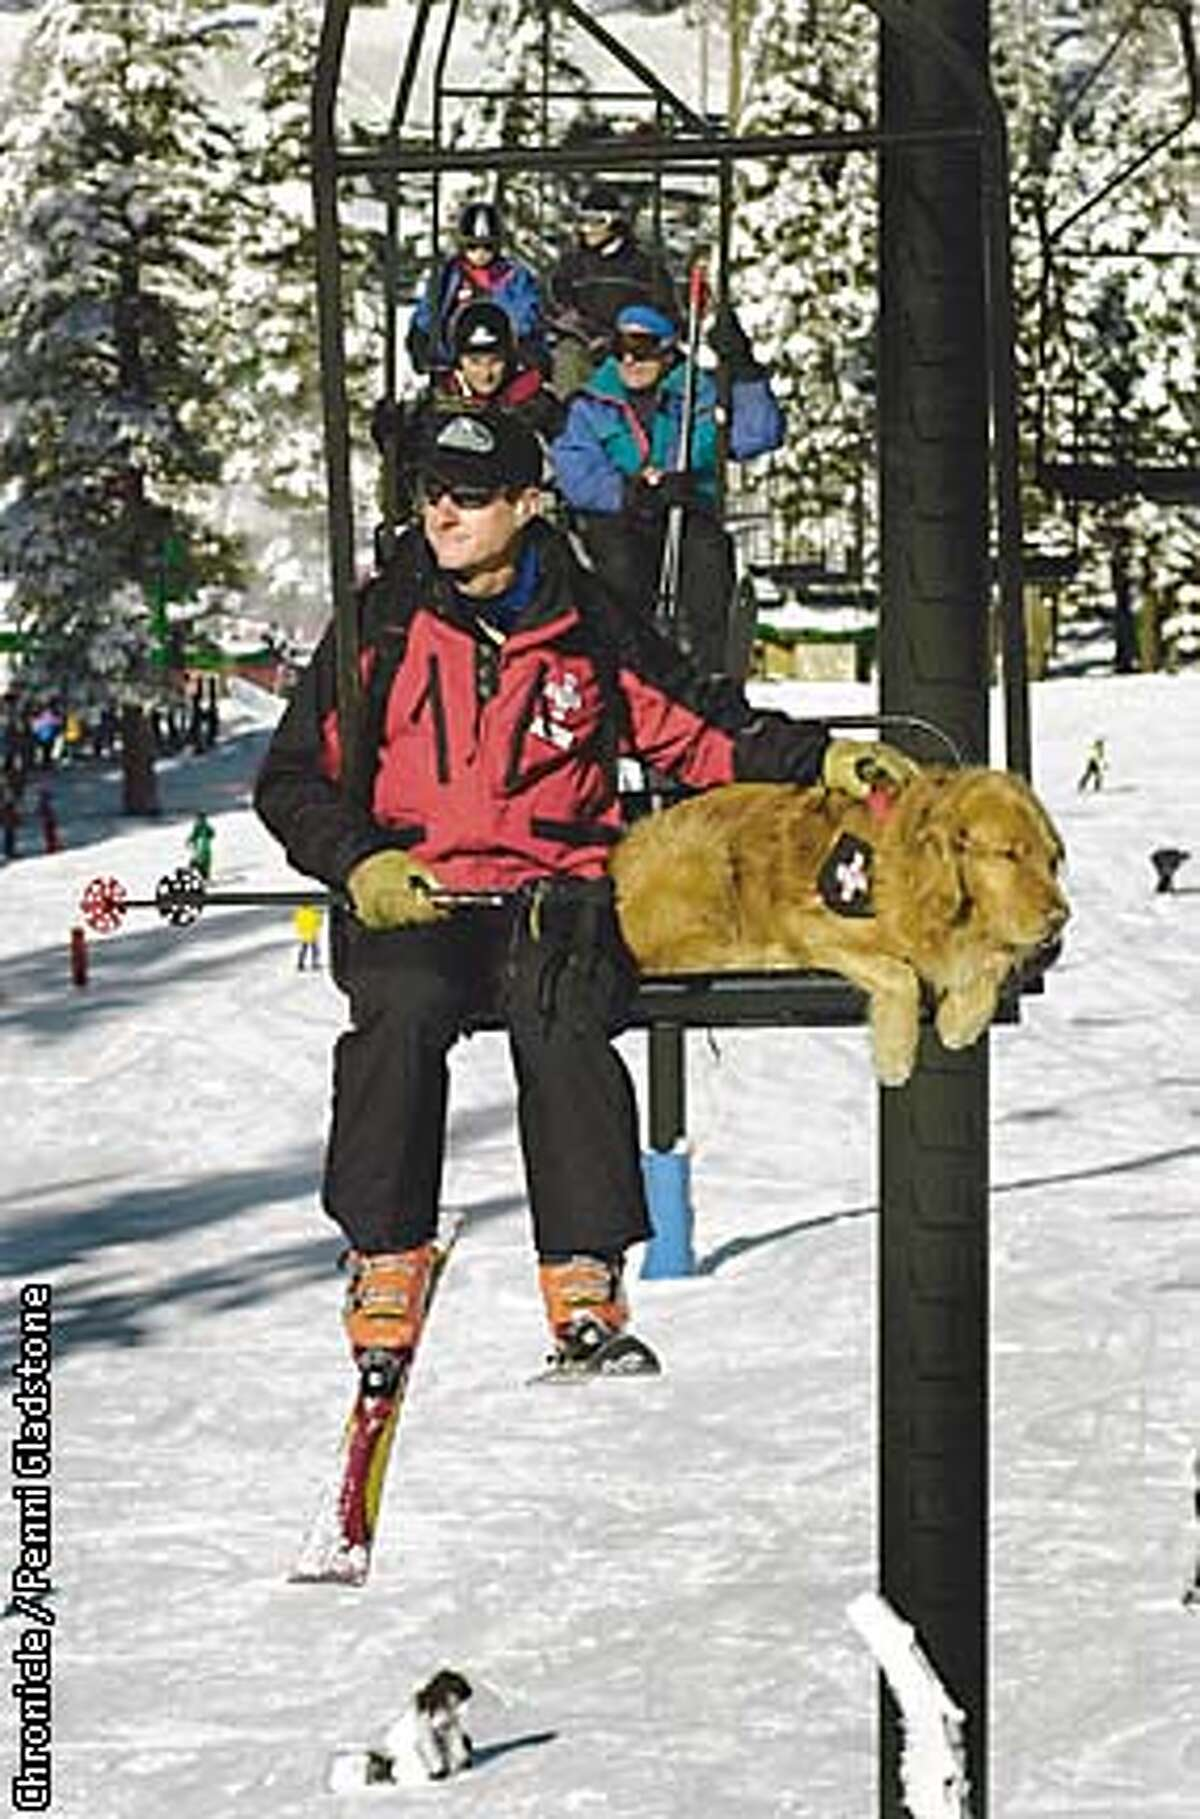 Jim Goldstone, a ski patroler at Alpine Meadows Ski Resort rides the ski lift with his search and rescue dog Zachery. The dog has to be used to riding on a chopper and snowmobile too. PHOTOGRAPHY BY PENNI GLADSTONE